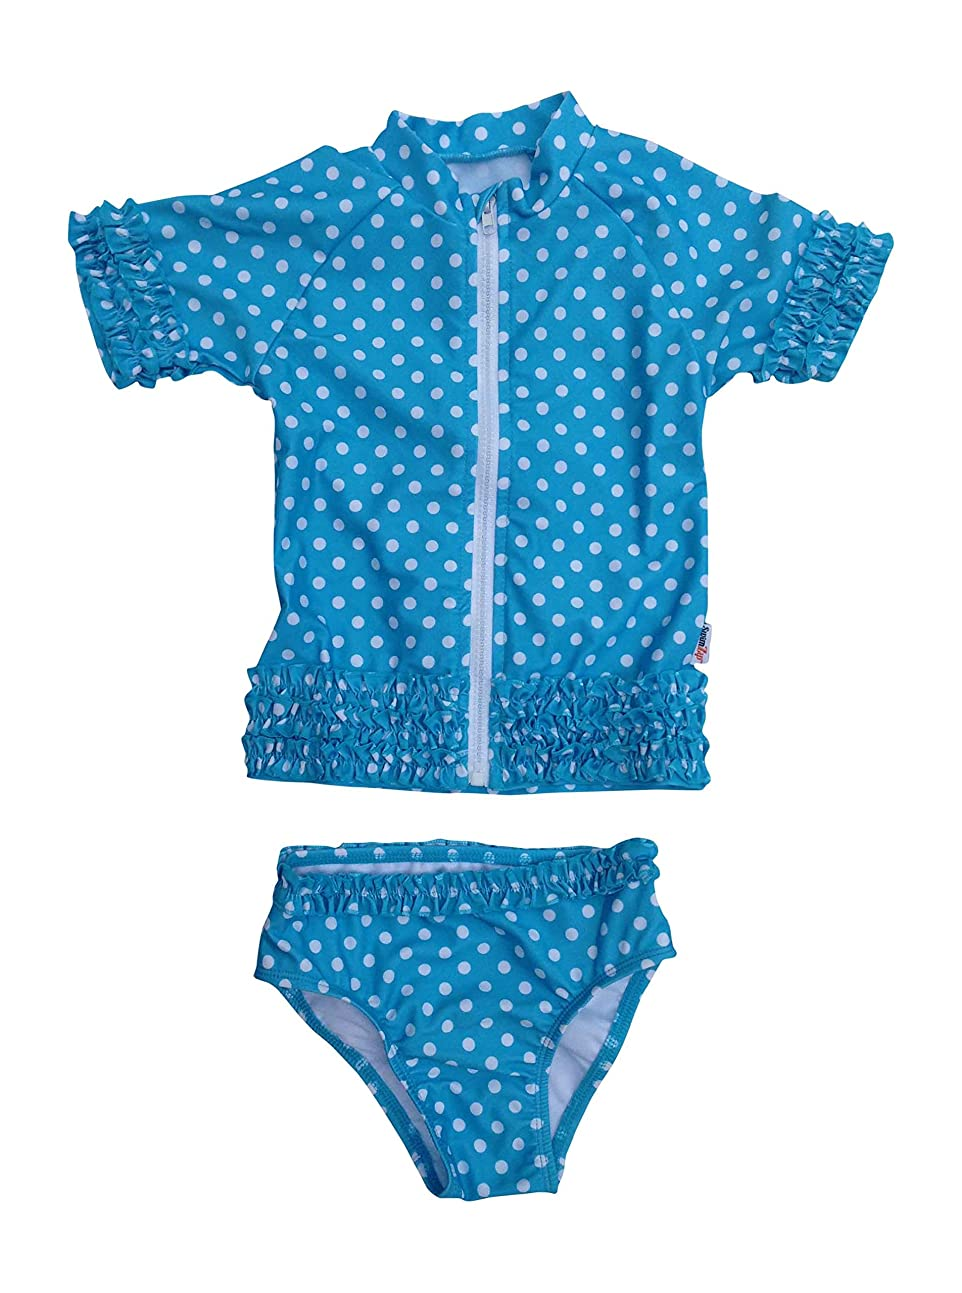 15e17c7a62 Best UV Protective Clothing for Girls. Reviews for Top Rated UV ...